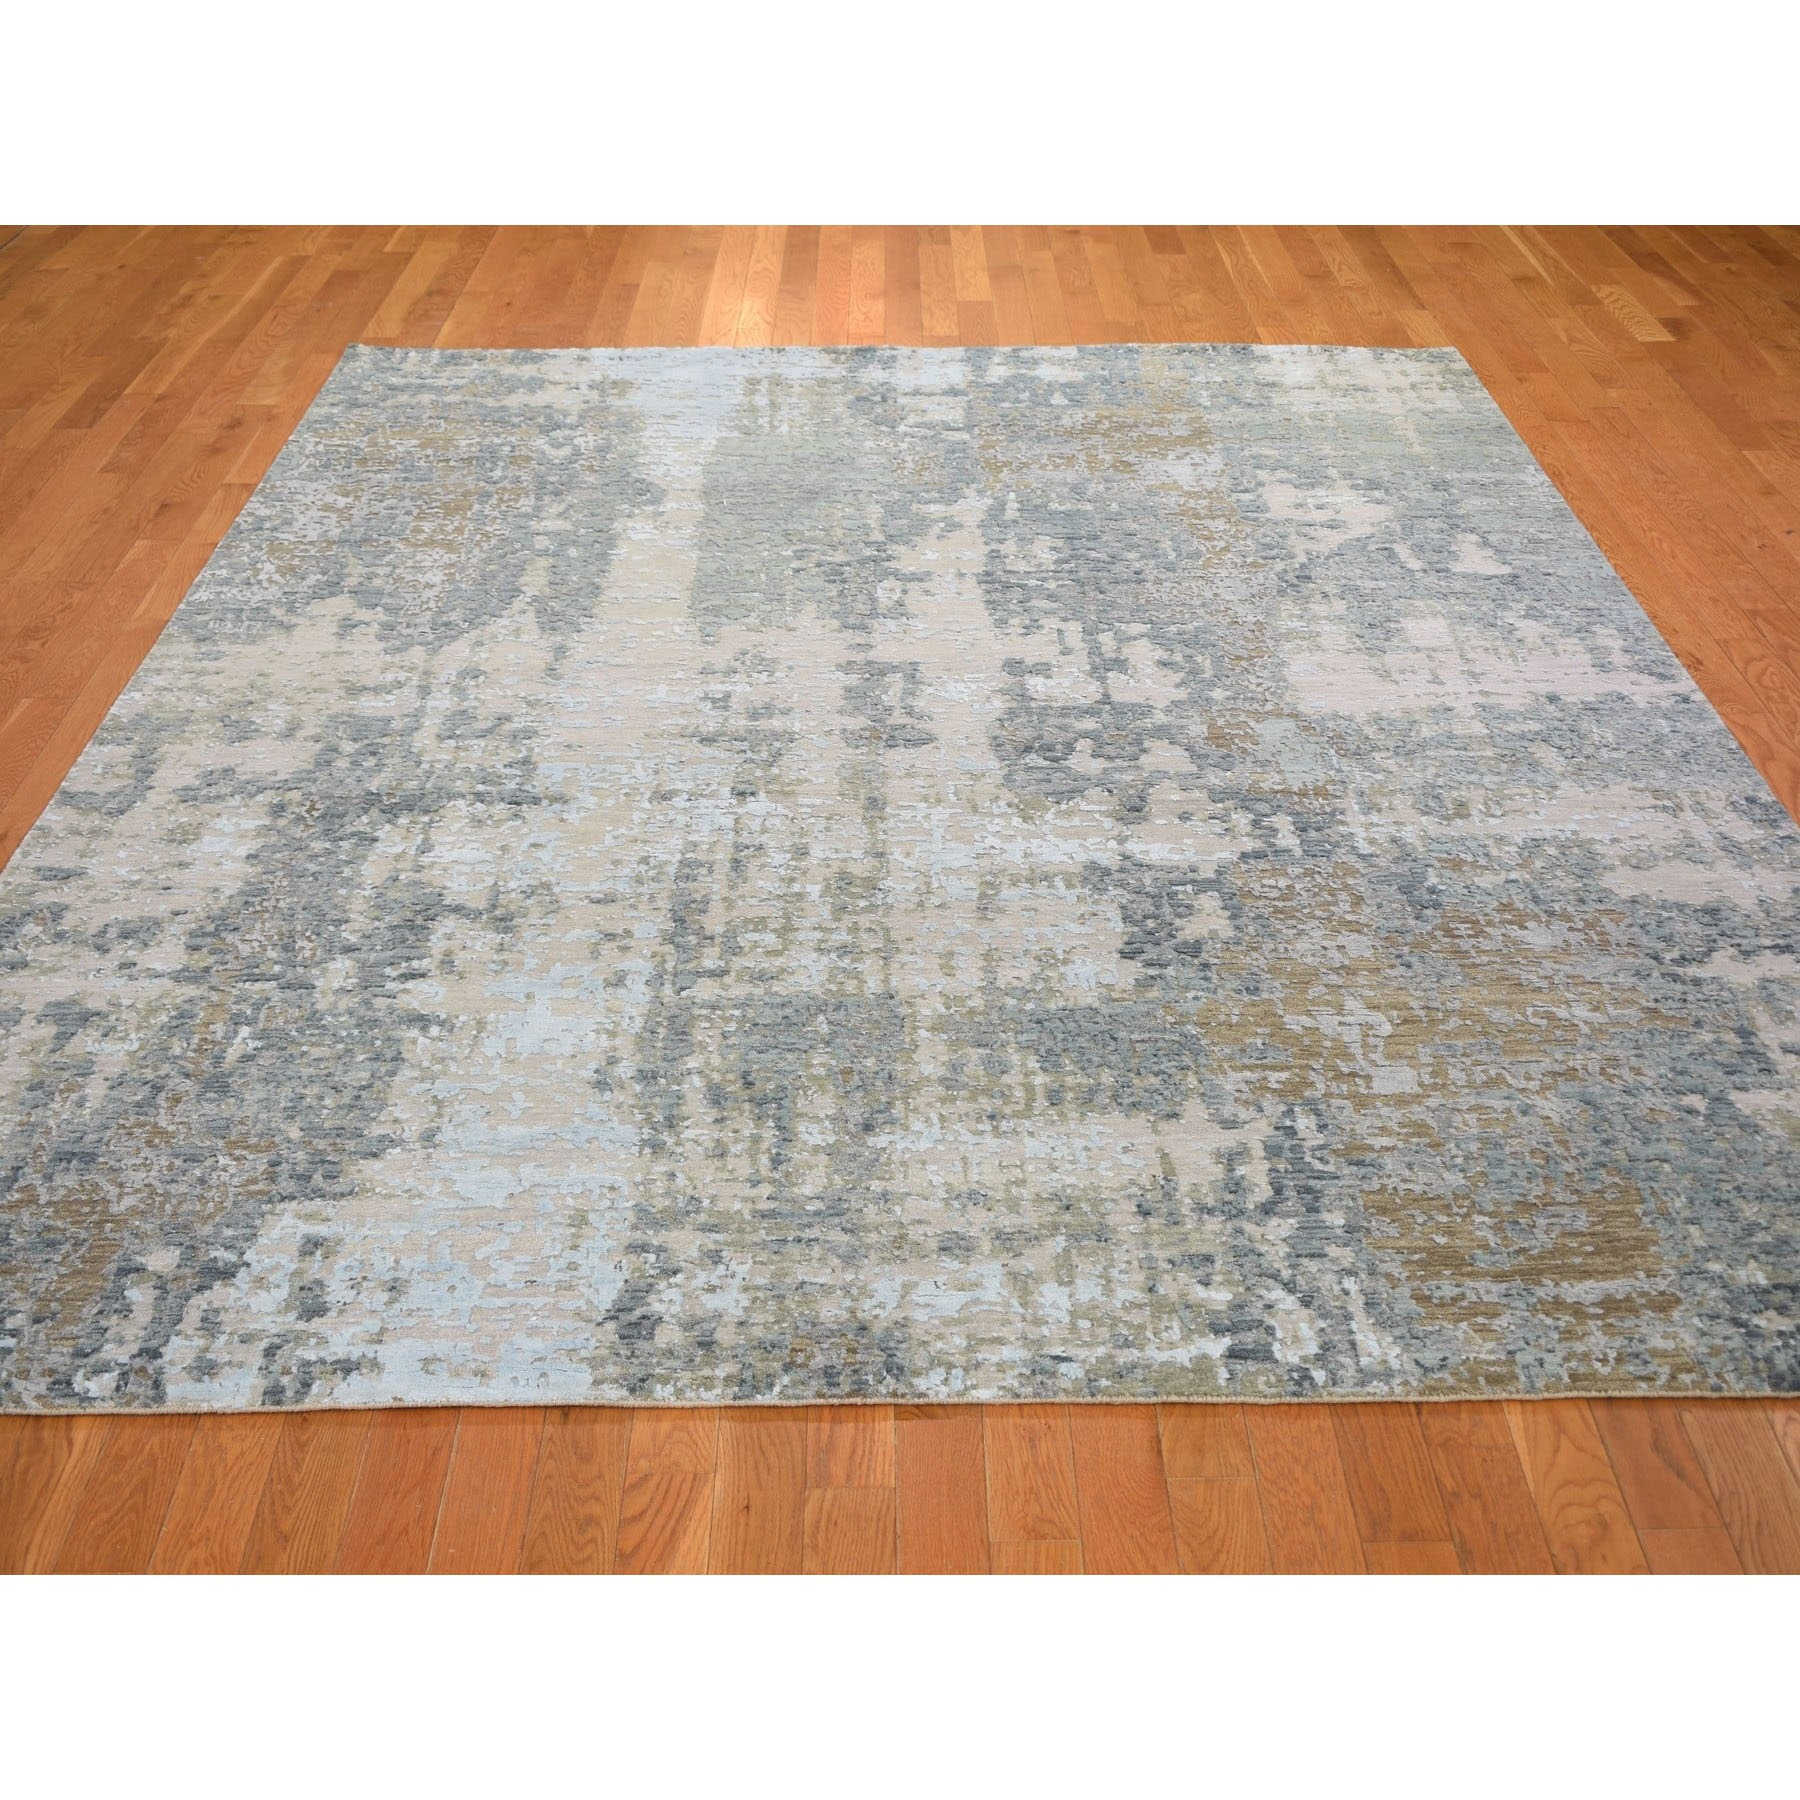 """8'x10'1"""" Gray Abstract Design Wool And Silk Hi-Low Pile Denser Weave Hand Knotted Oriental Rug"""